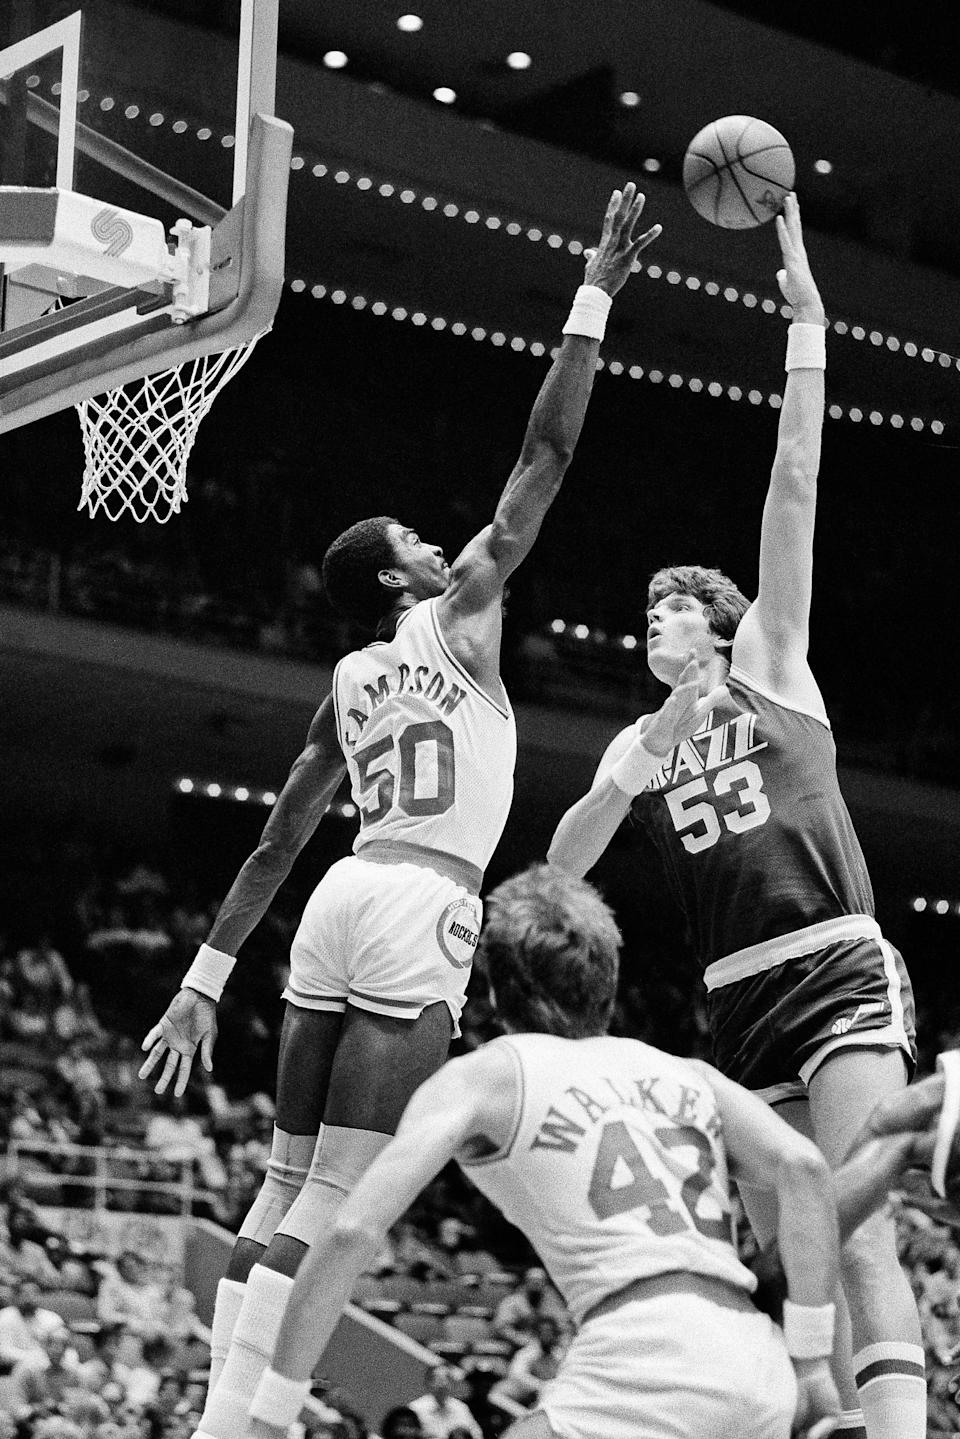 FILE - In this Nov. 11, 1983, file photo, Utah Jazz center Mark Eaton , right, puts a hook shot up and over the outstretched hand of Houston Rocket center Ralph Sampson during the first period of an NBA basketball game at the Summit in Houston. Eaton, the 7-foot-4 shot-blocking king who twice was the NBA's defensive player of the year during his career with the Utah Jazz, has died, the team said Saturday, May 29, 2021. He was 64. (AP Photo/R.J. Carson, File)